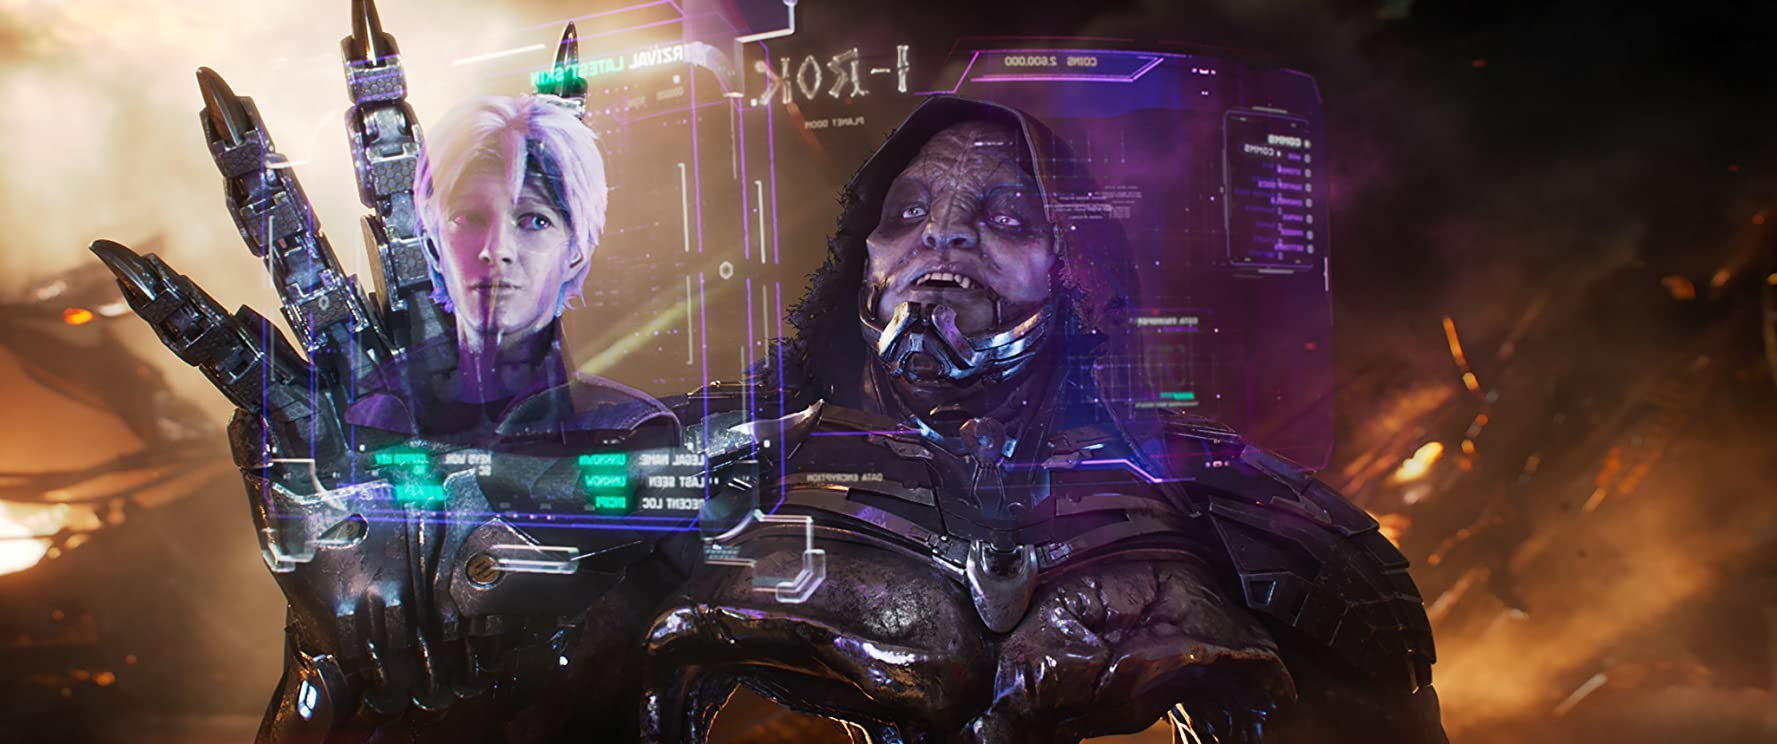 T.J. Miller and Tye Sheridan in Ready Player One (2018)